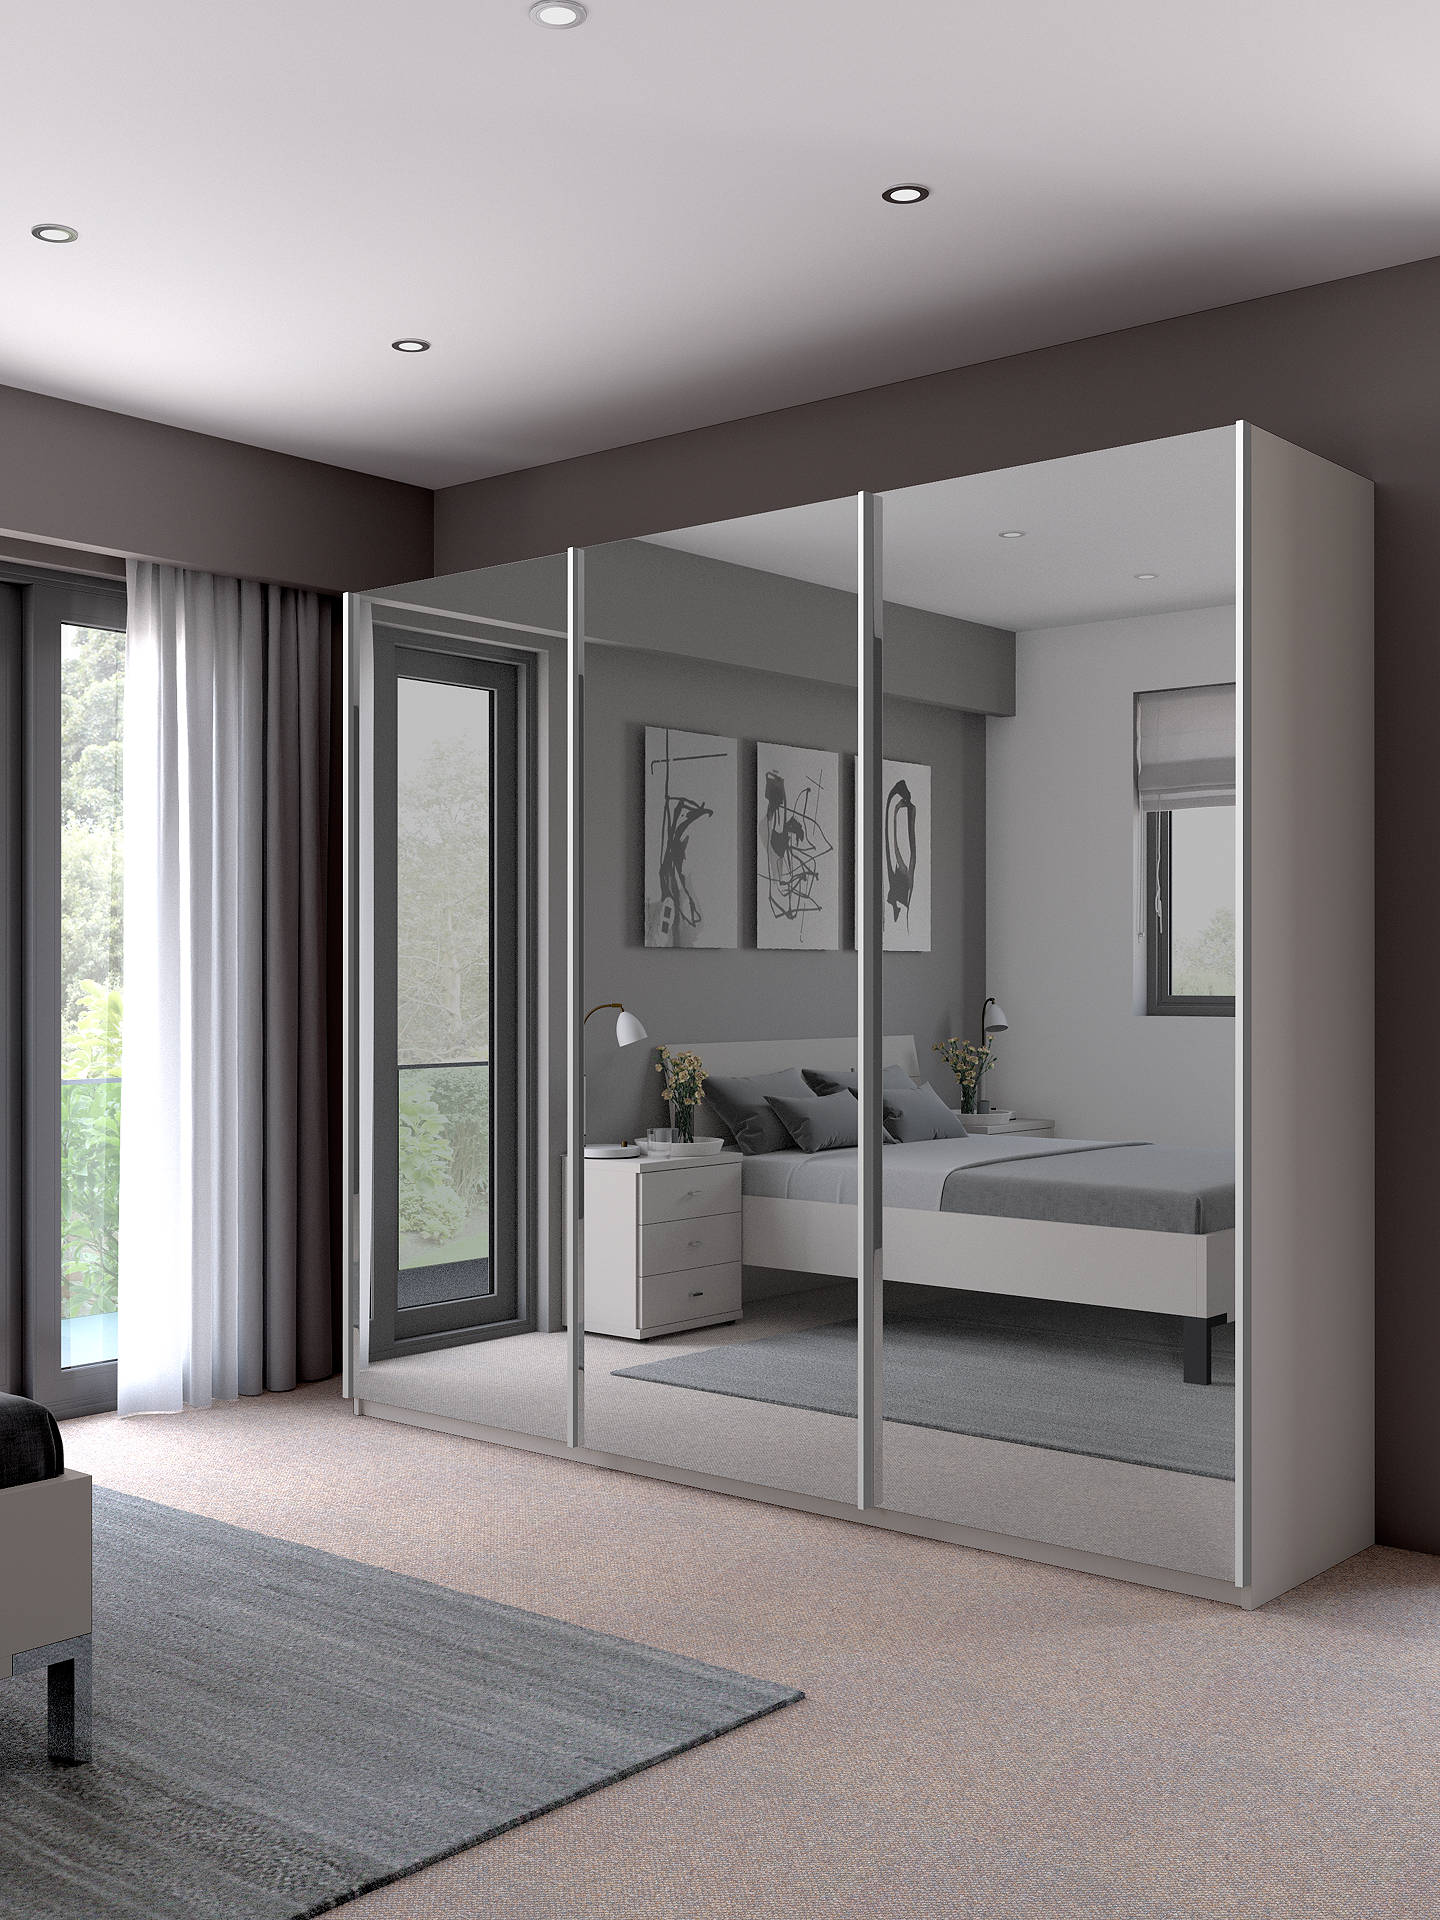 Buy John Lewis & Partners Elstra 250cm Wardrobe with Mirrored Sliding Doors, Matt White Online at johnlewis.com